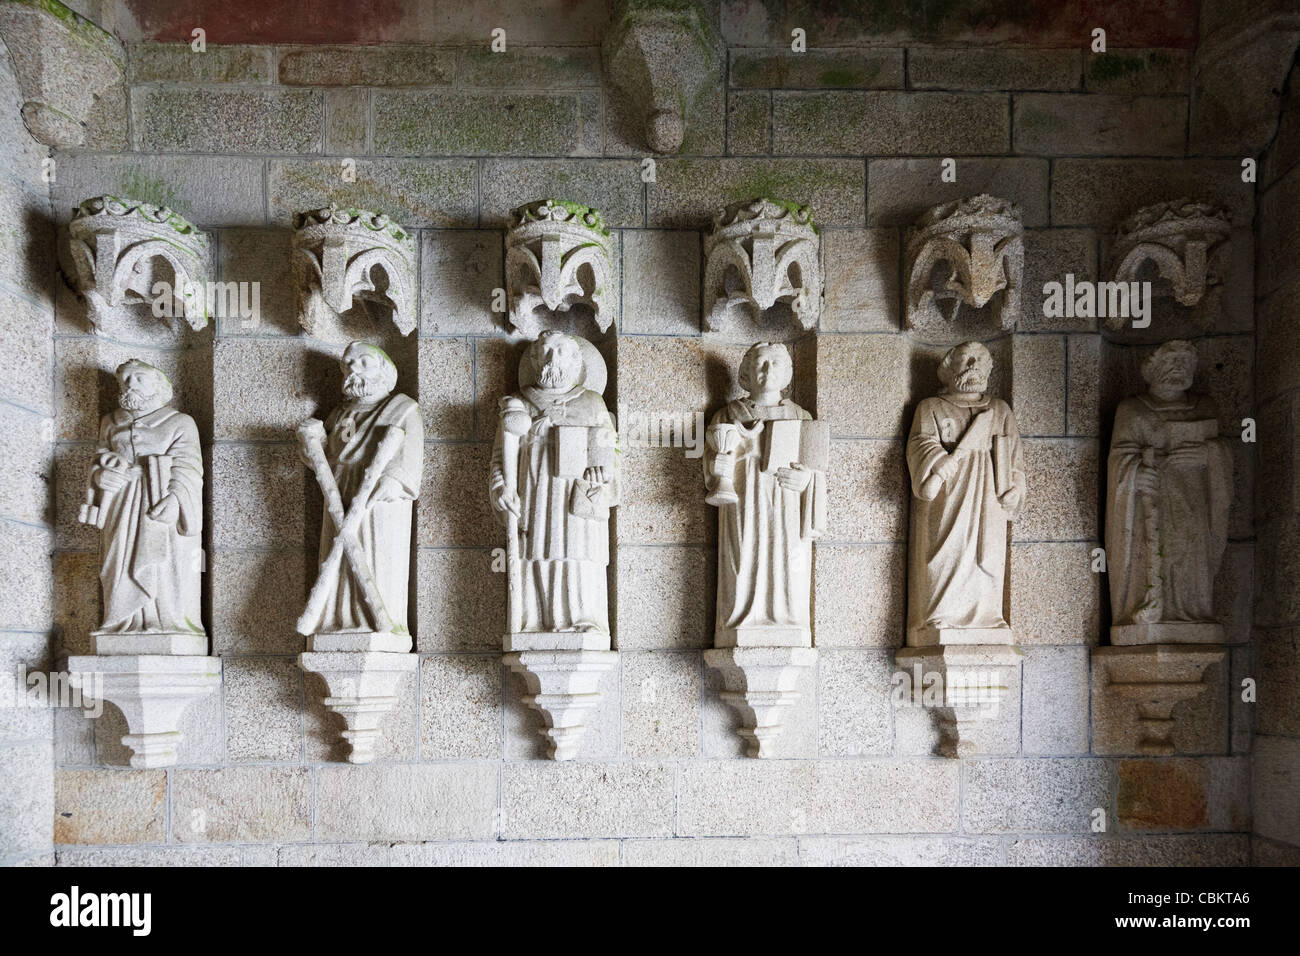 Statues of Saints in a church doorway, France - Stock Image